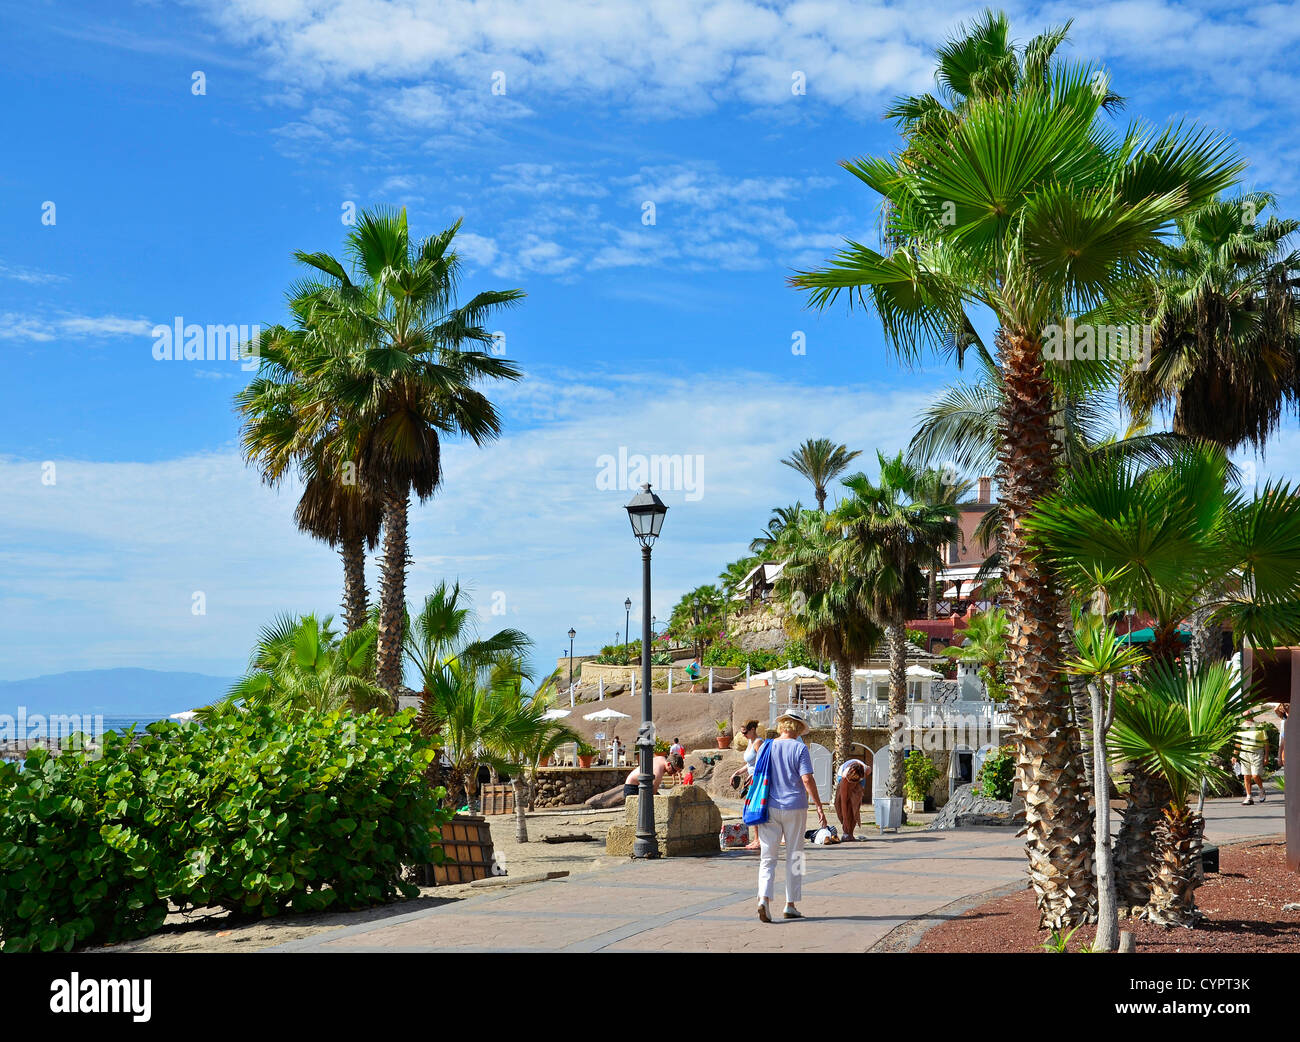 The resort of Bahia Del Duque on the Costa Adeje in Tenerife, Canary Islands - Stock Image